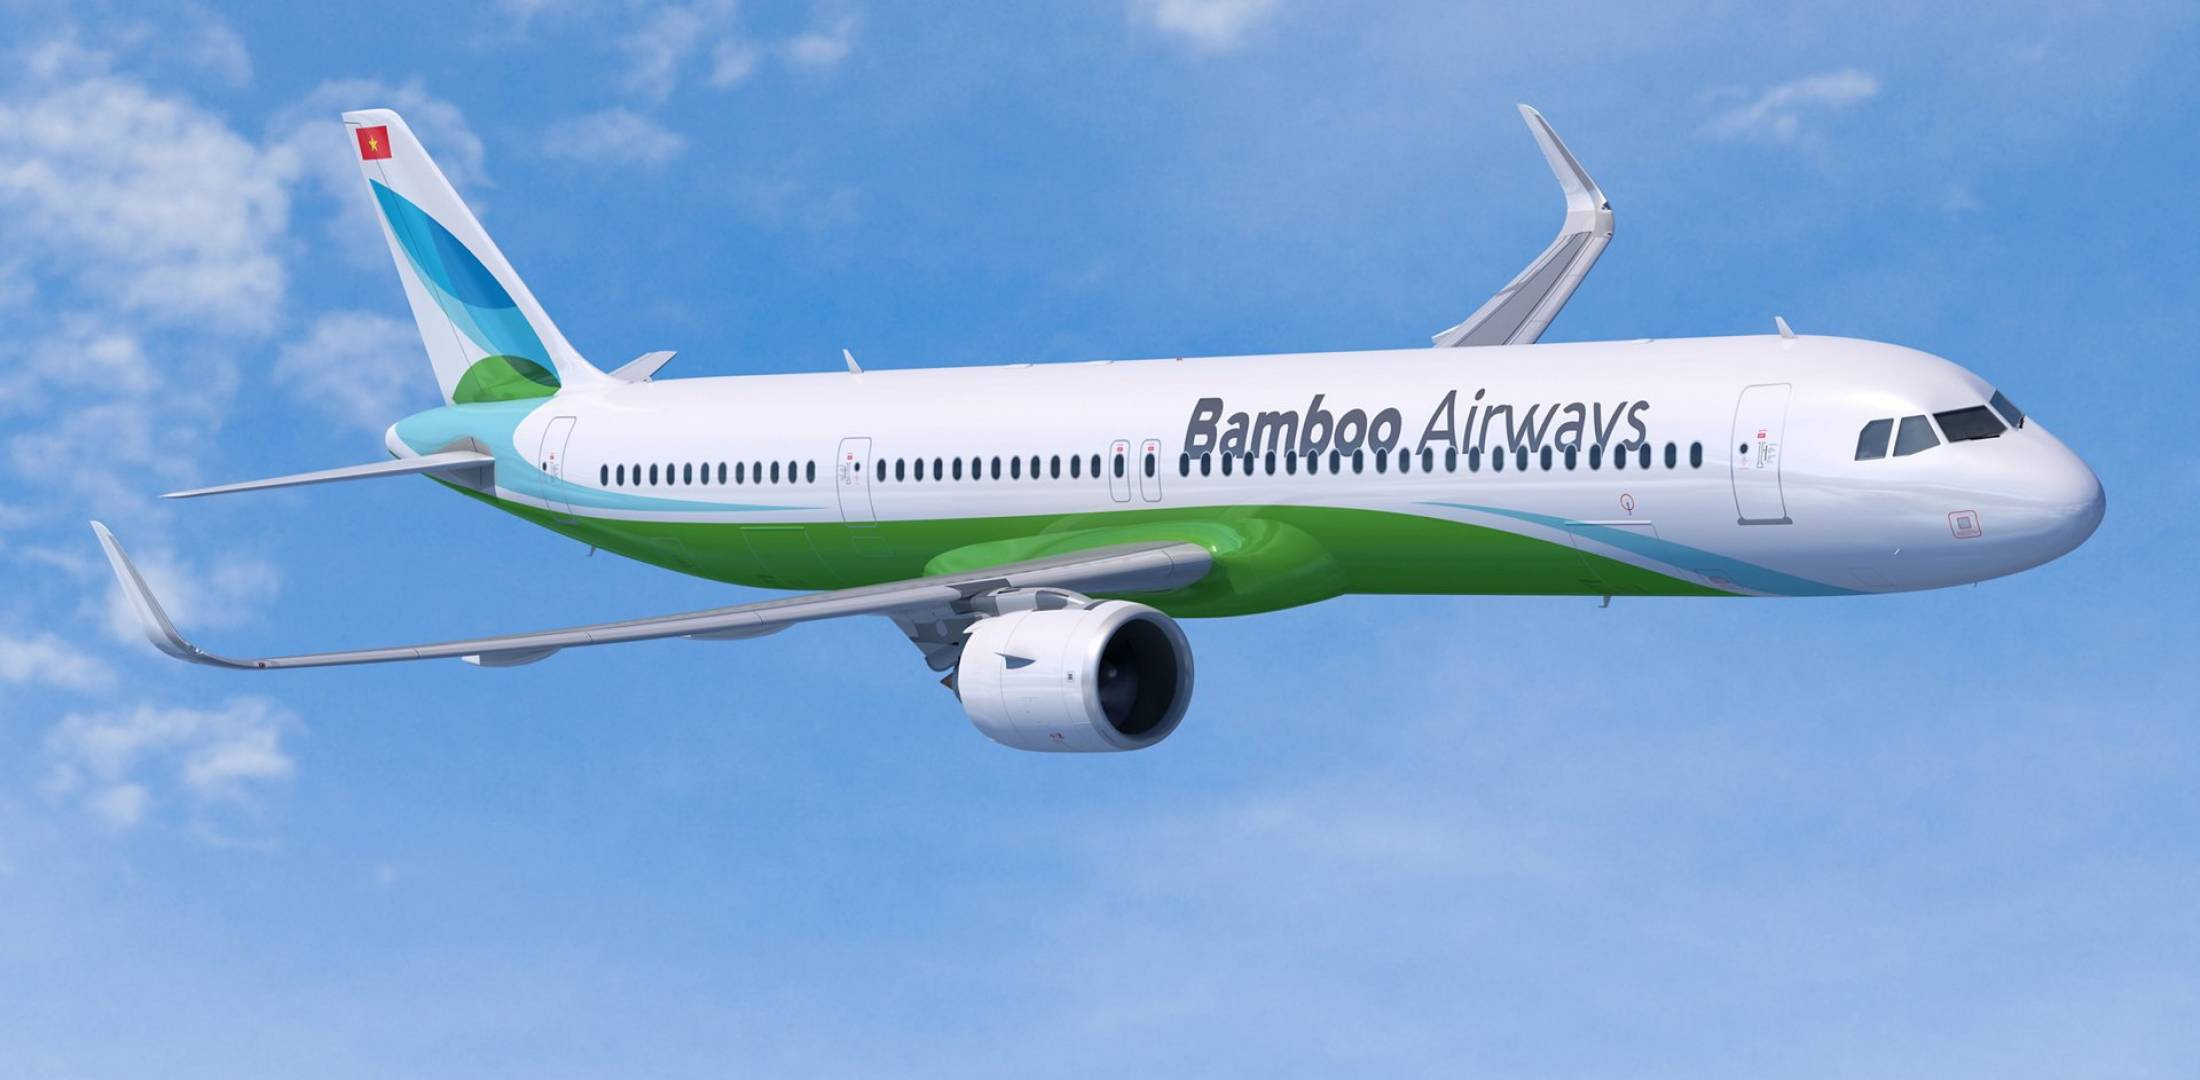 Bamboo Crowded MarketAir Set Vietnam To Join Airline Airways JTF1Klc